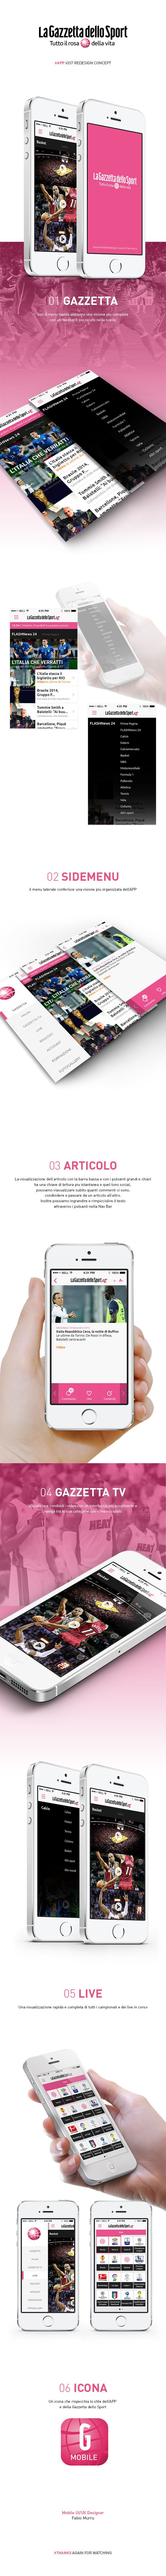 Gazzetta Mobile App, iOS7 Redesign Concept, by Fabio Murru, via Behance